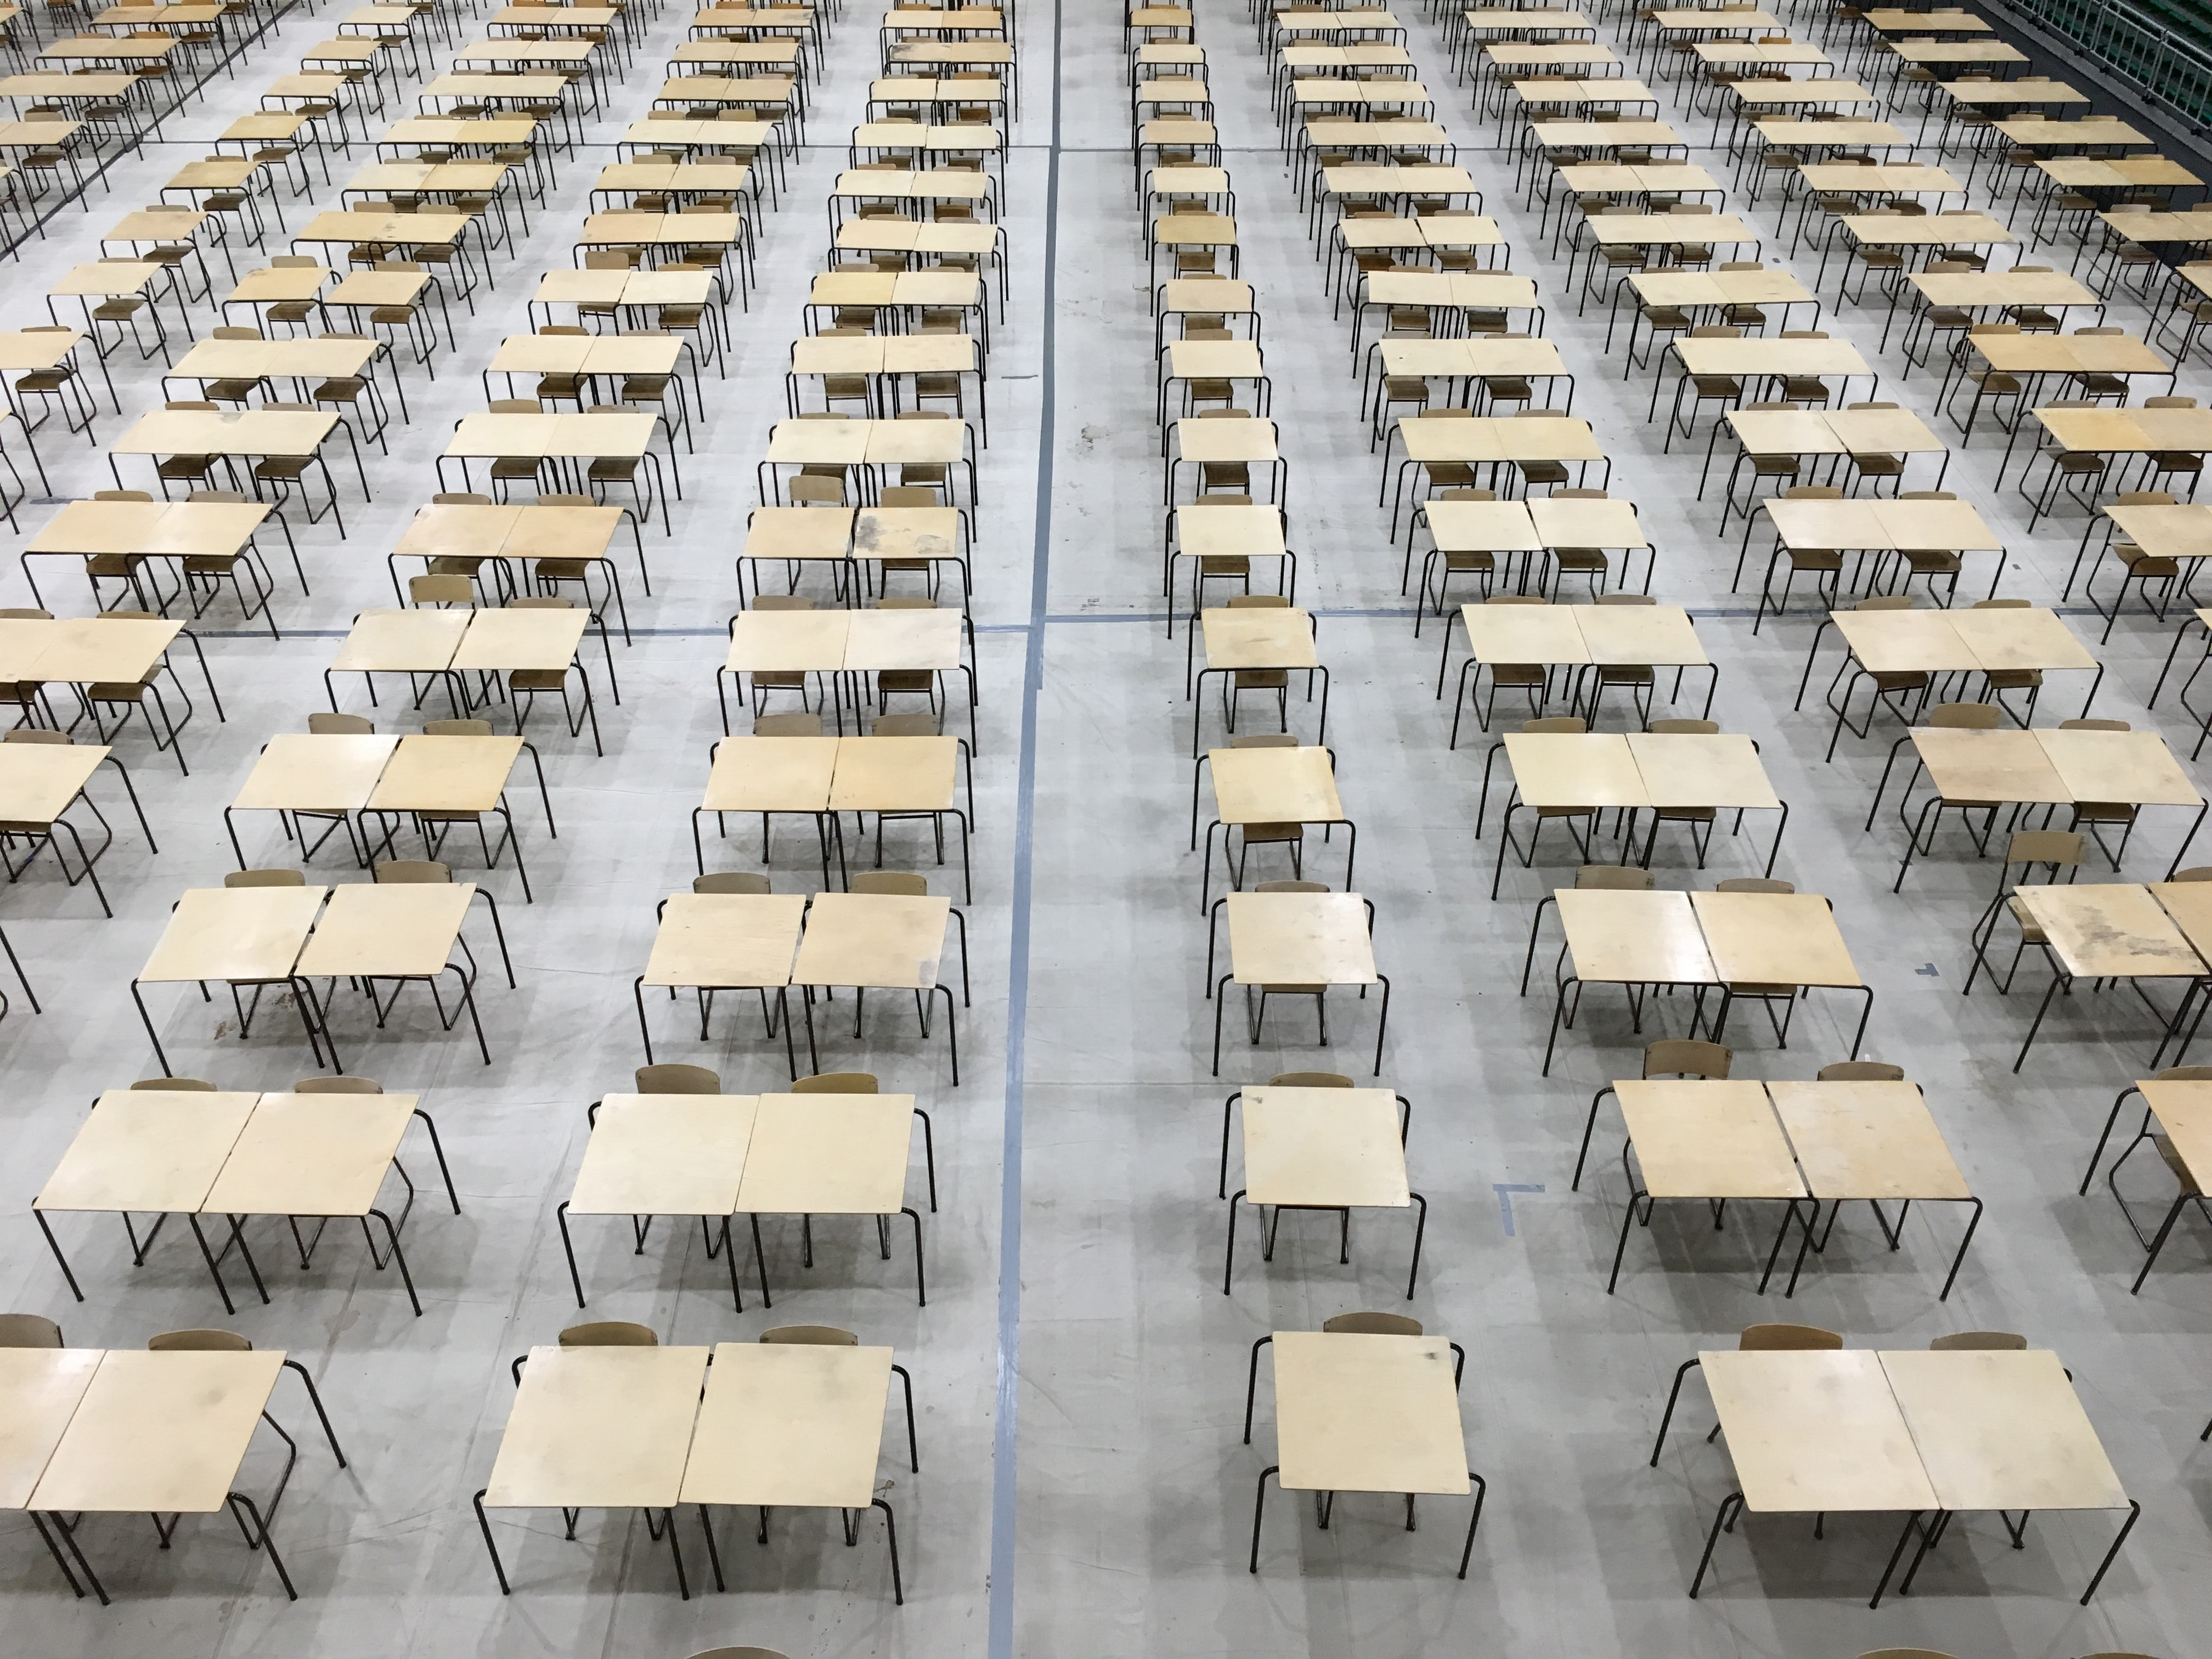 Rows of desks and chairs in an exam hall